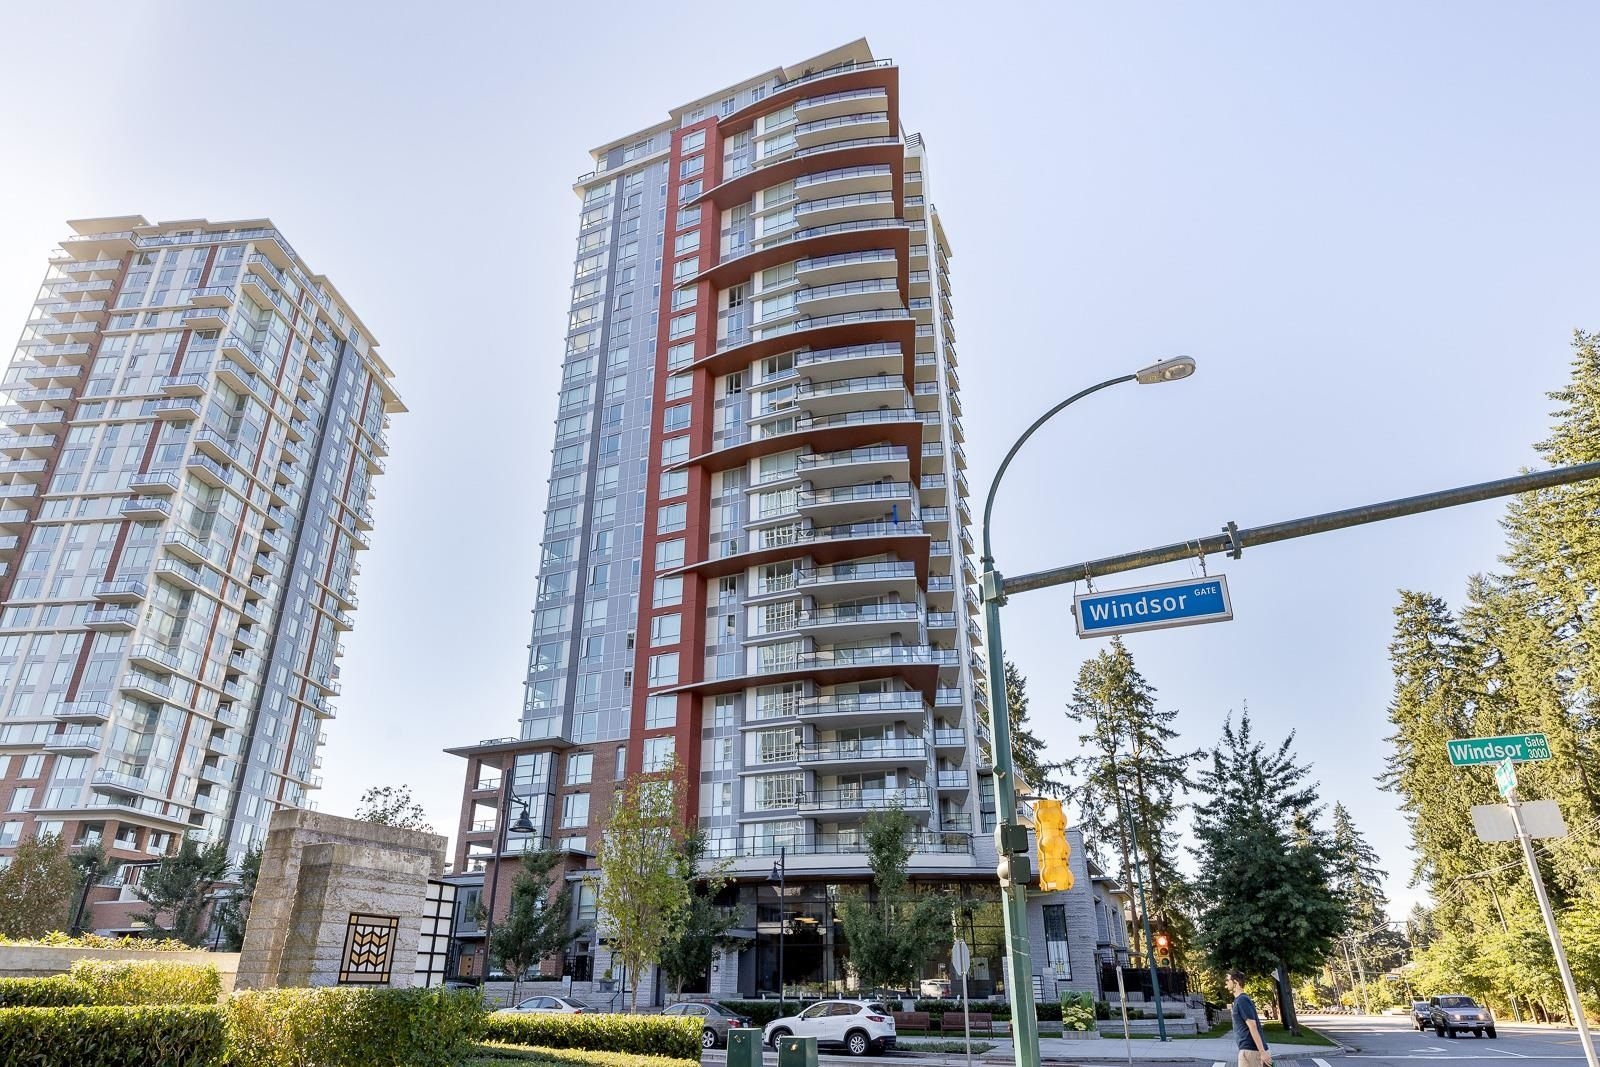 """Main Photo: 705 3096 WINDSOR Gate in Coquitlam: New Horizons Condo for sale in """"MANTYLA BY POLYGON"""" : MLS®# R2618506"""